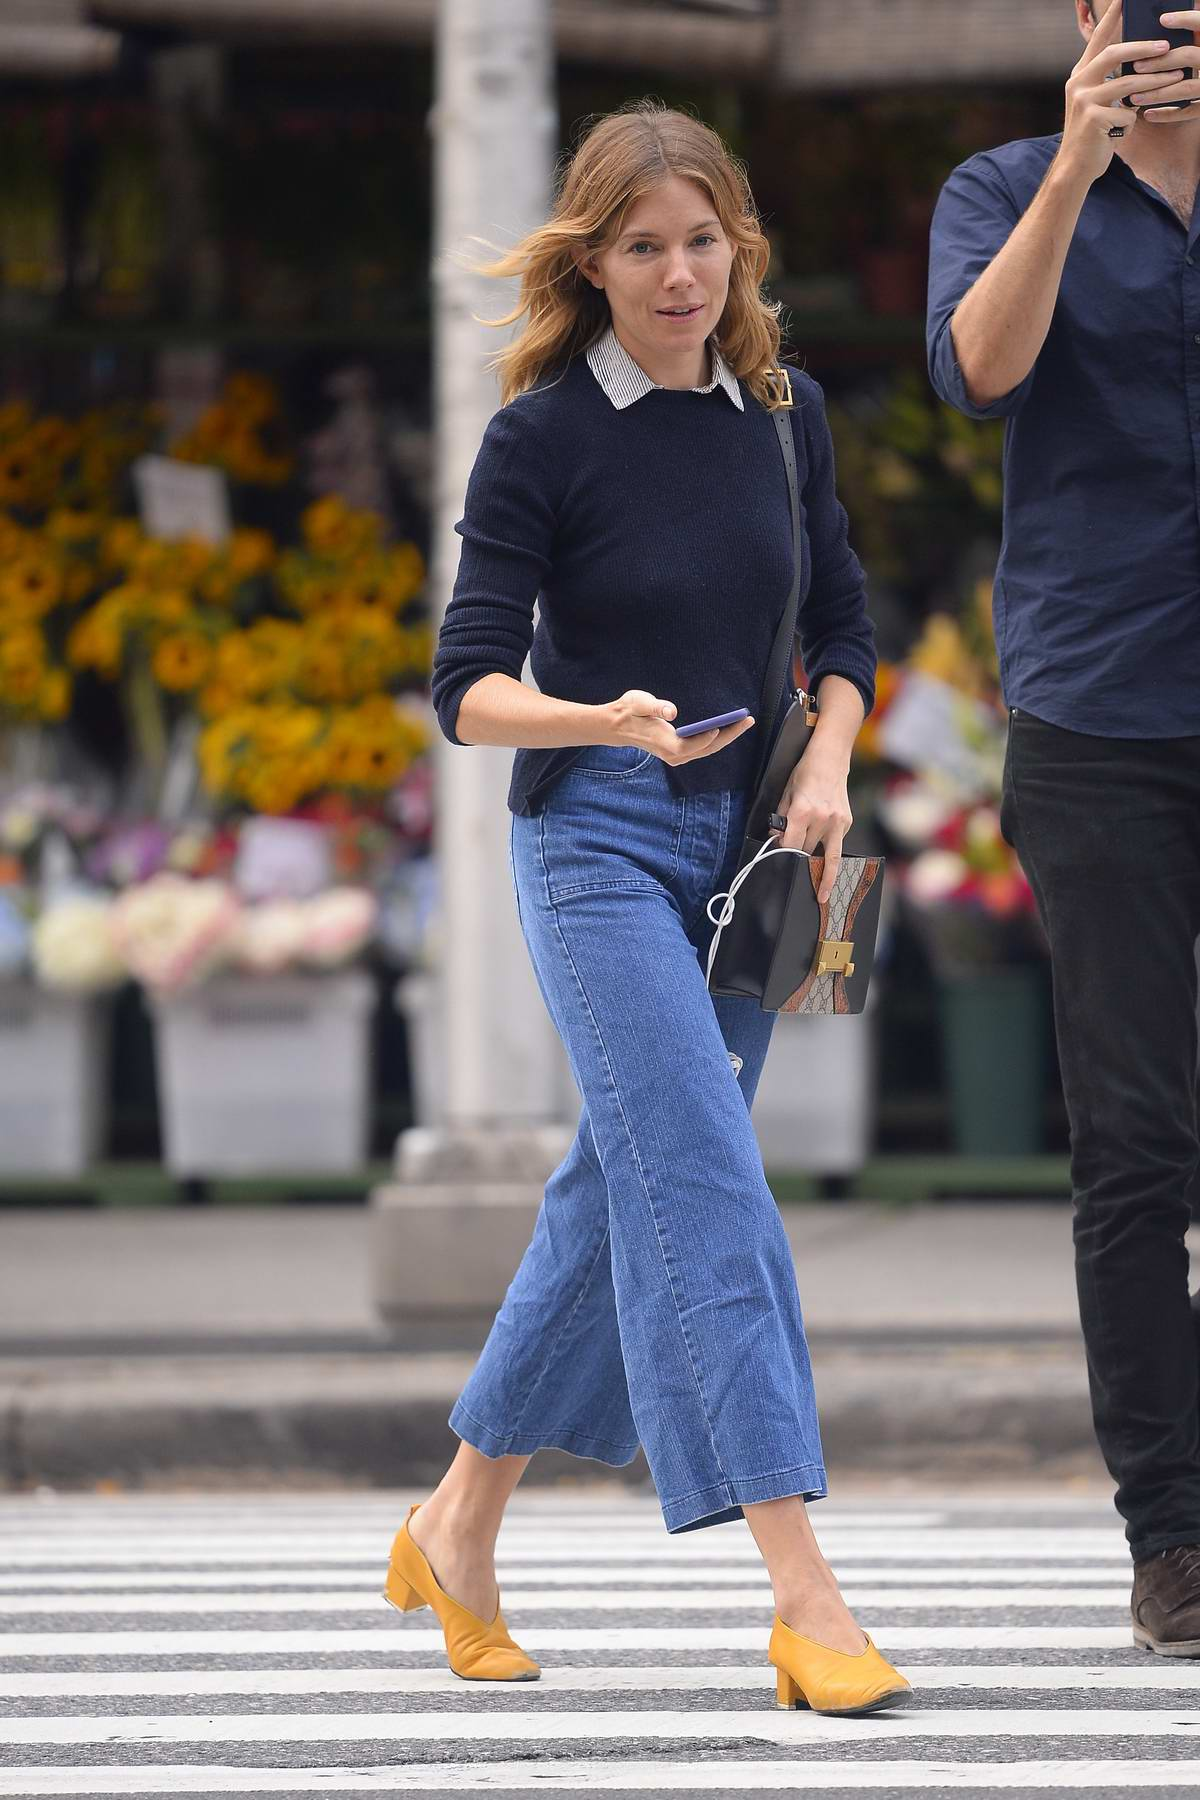 Sienna Miller wears blue sweater, flared jeans paired with mustard colored shoes while out in New York City